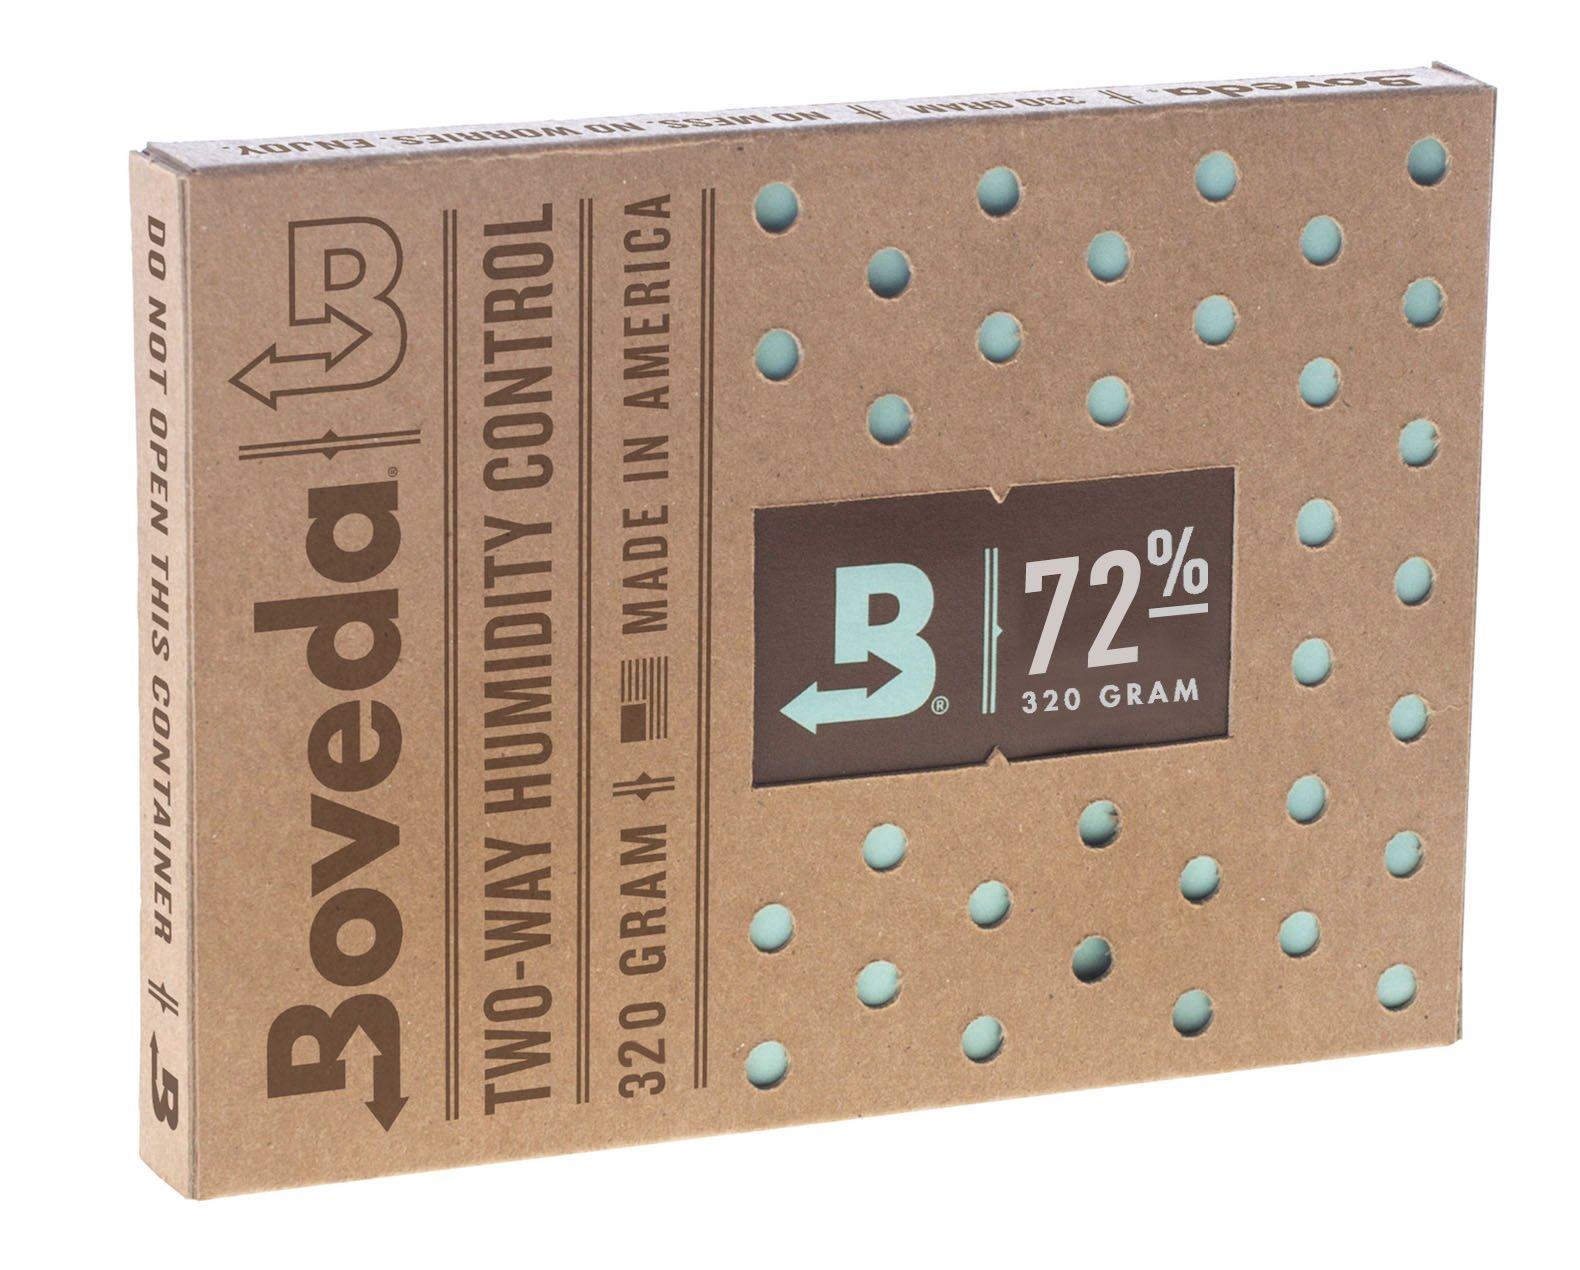 BOVEDA 72 Percent RH (320 Gram) - 2-Way Humidity Control Pack by Boveda